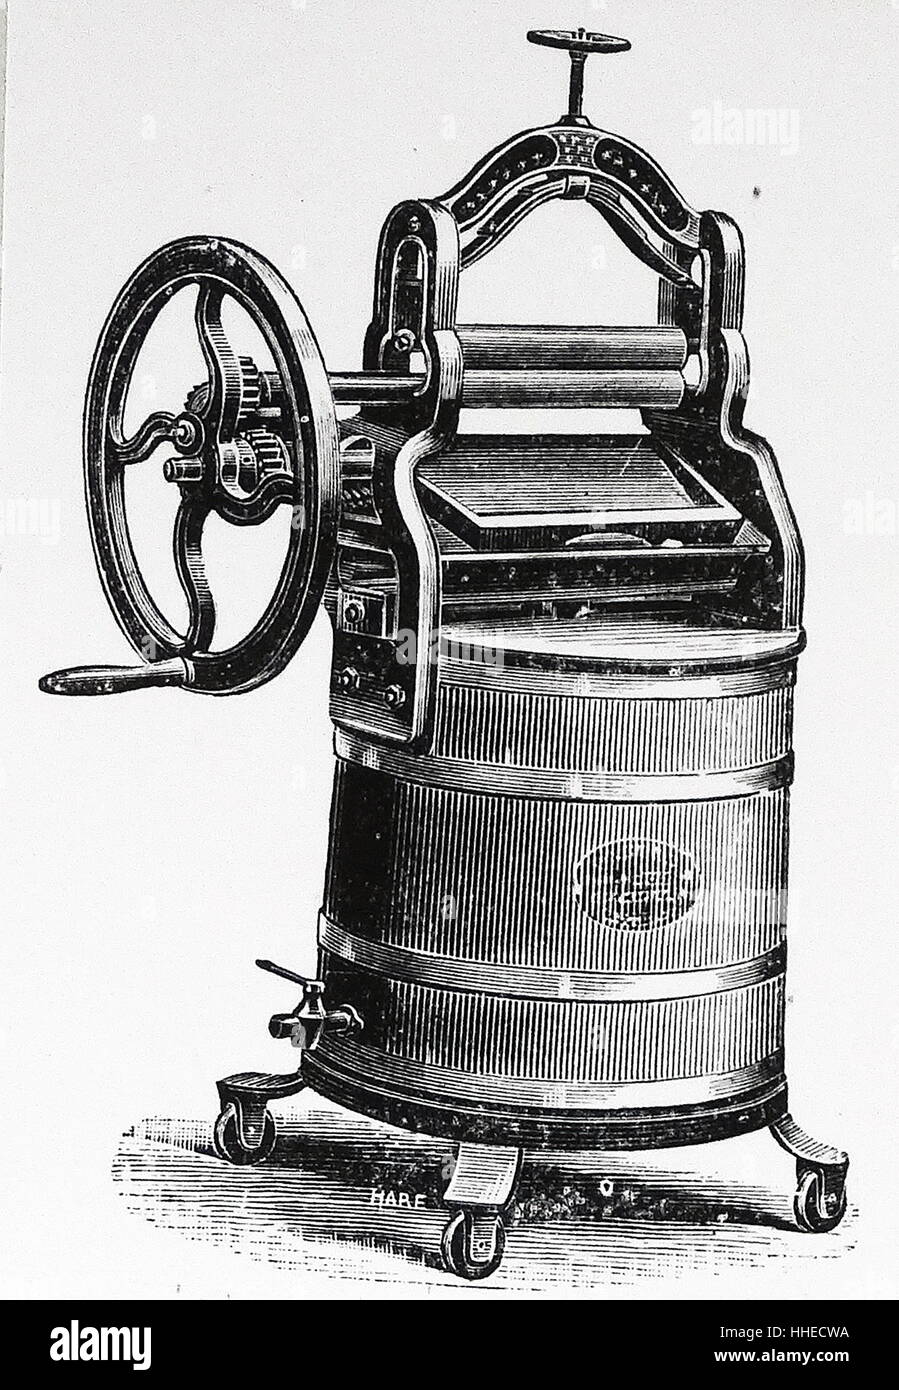 Villa washing machine by Messrs Twelve-trees. This had dashers inside to agitate the washing. 1895 - Stock Image